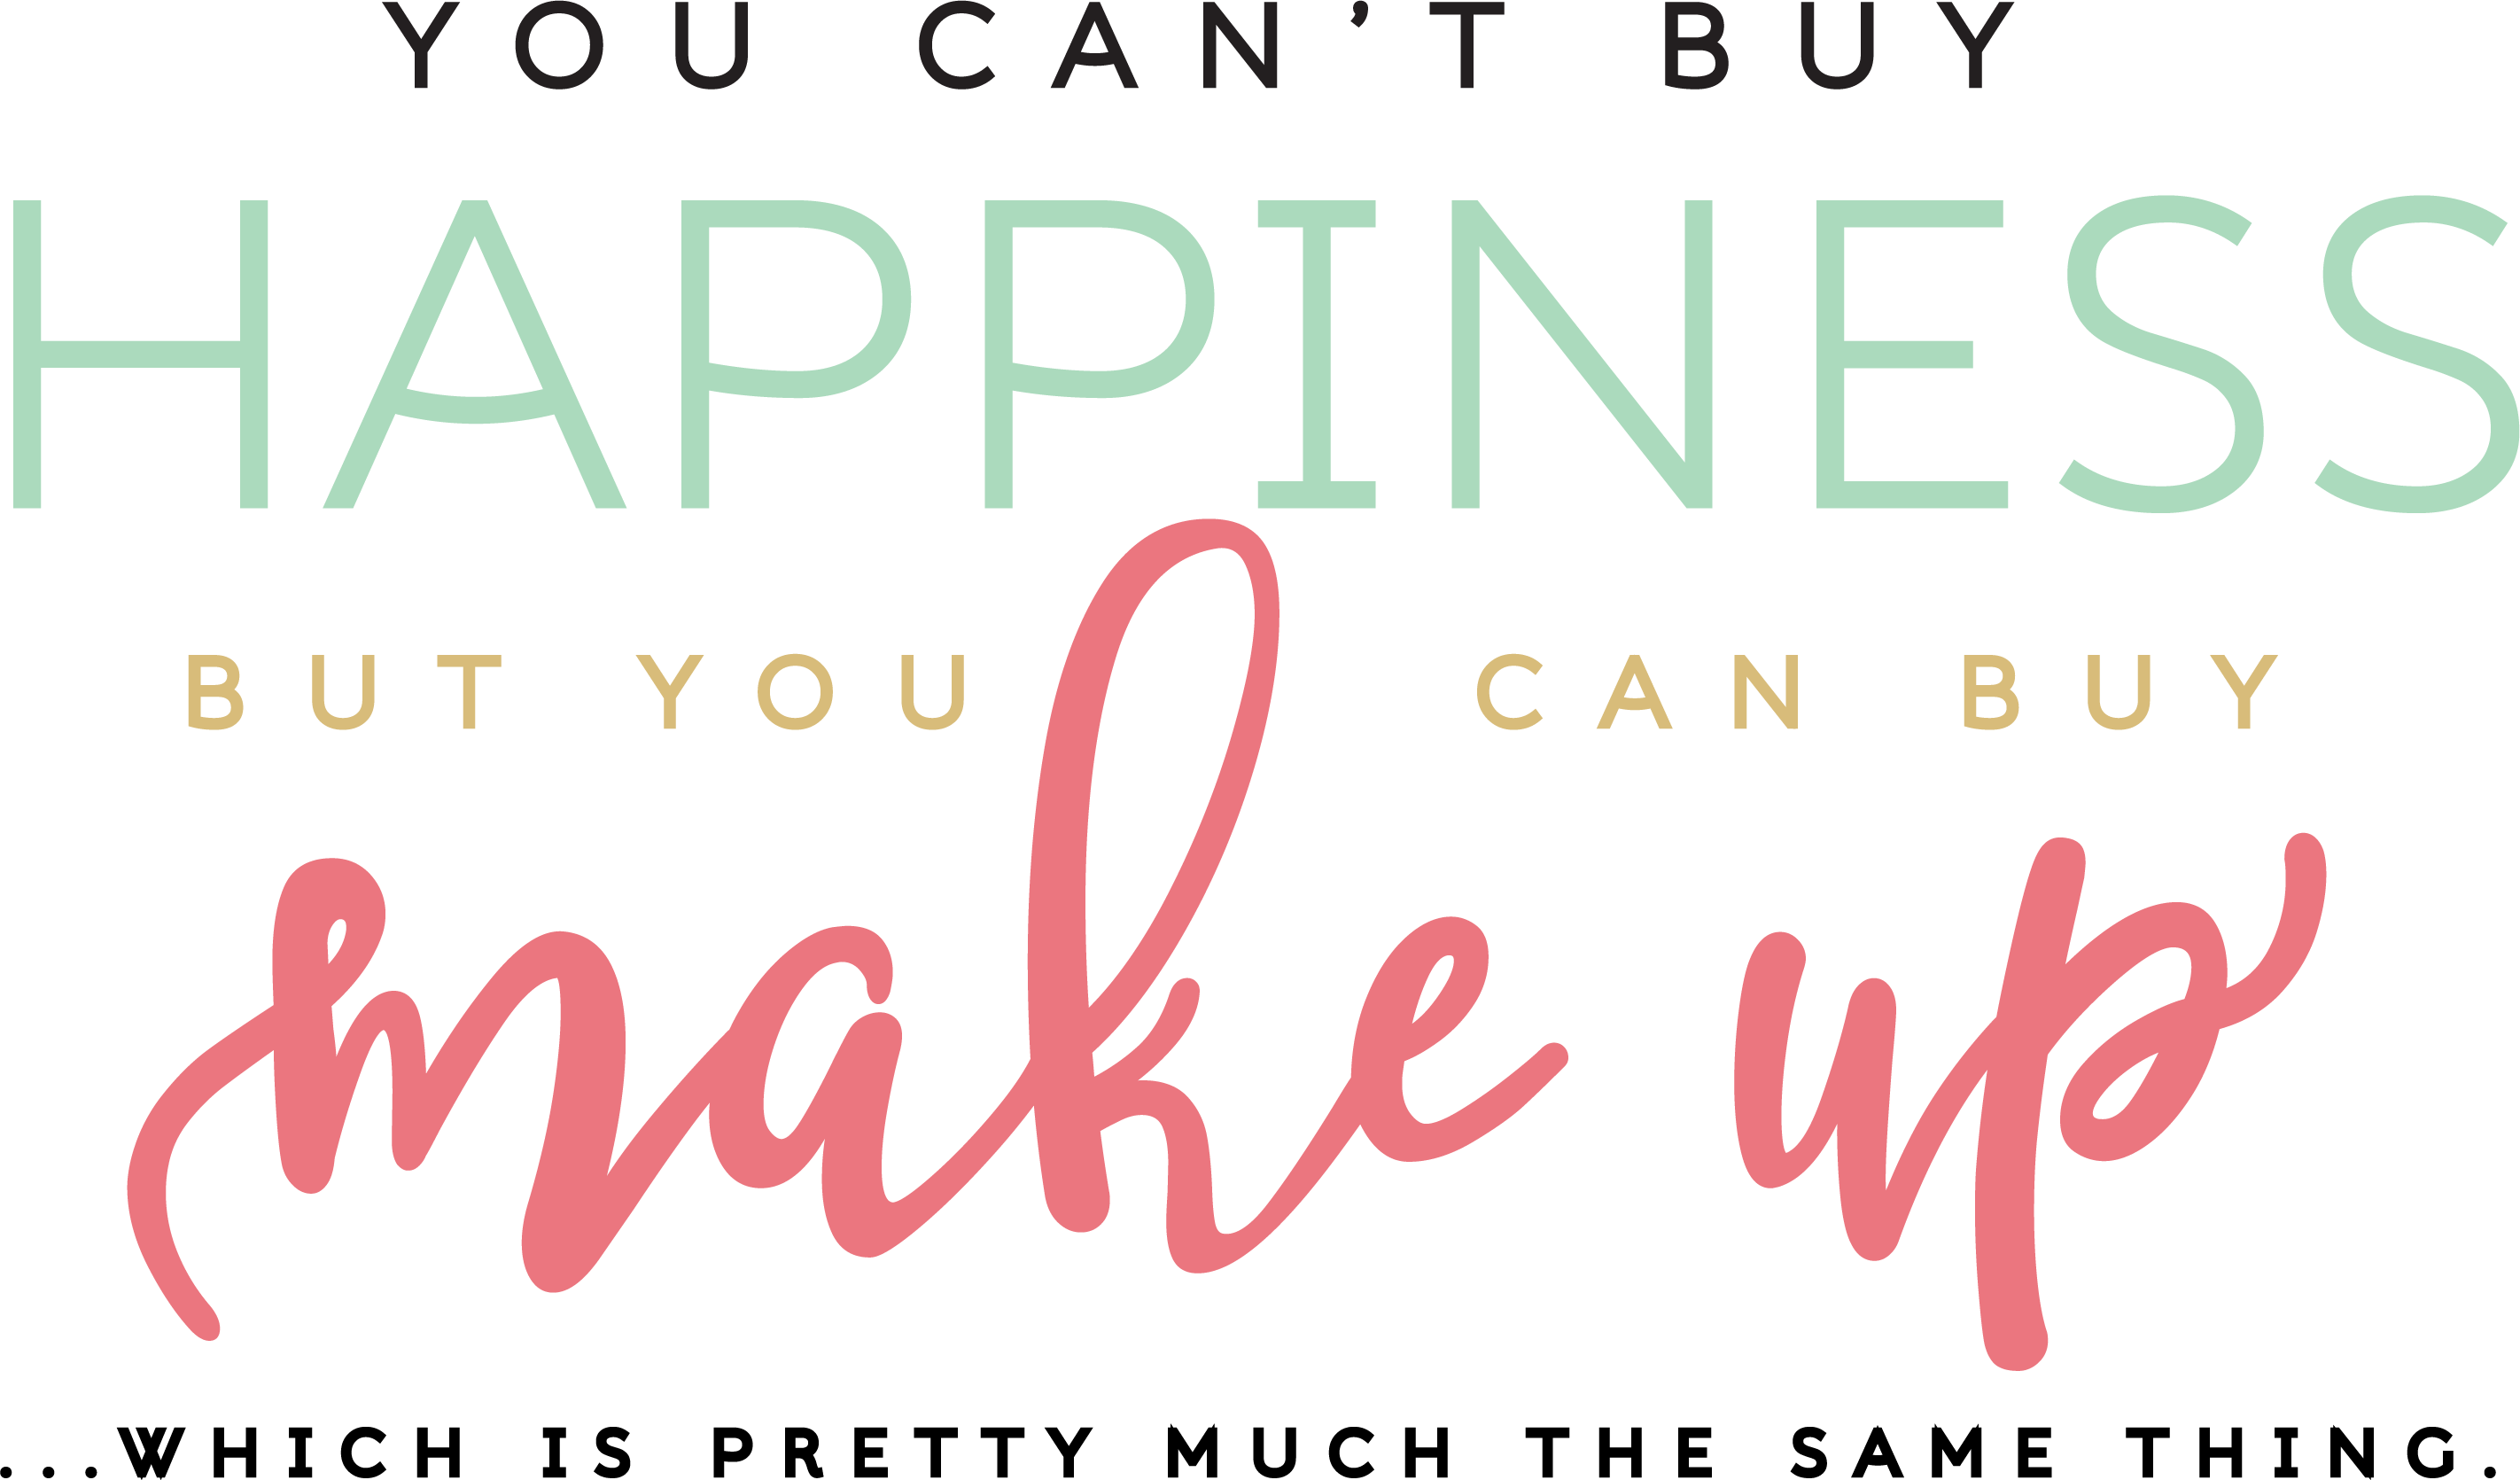 You Can't Buy Happiness SVB Cut File